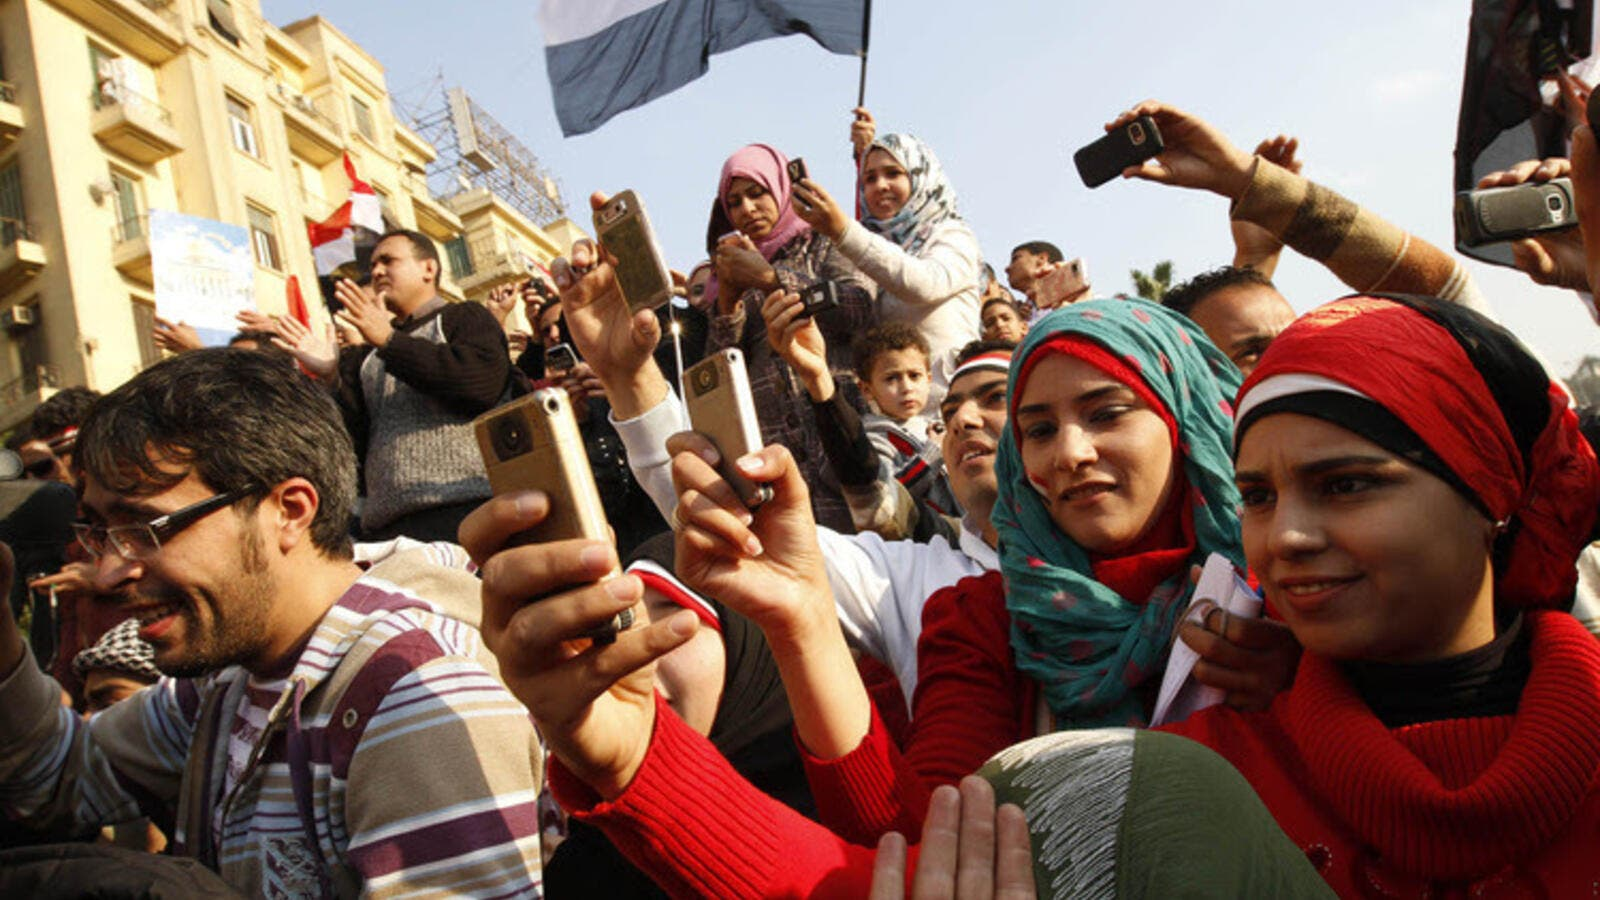 Mobile phone use is popular among Egyptians of all ages